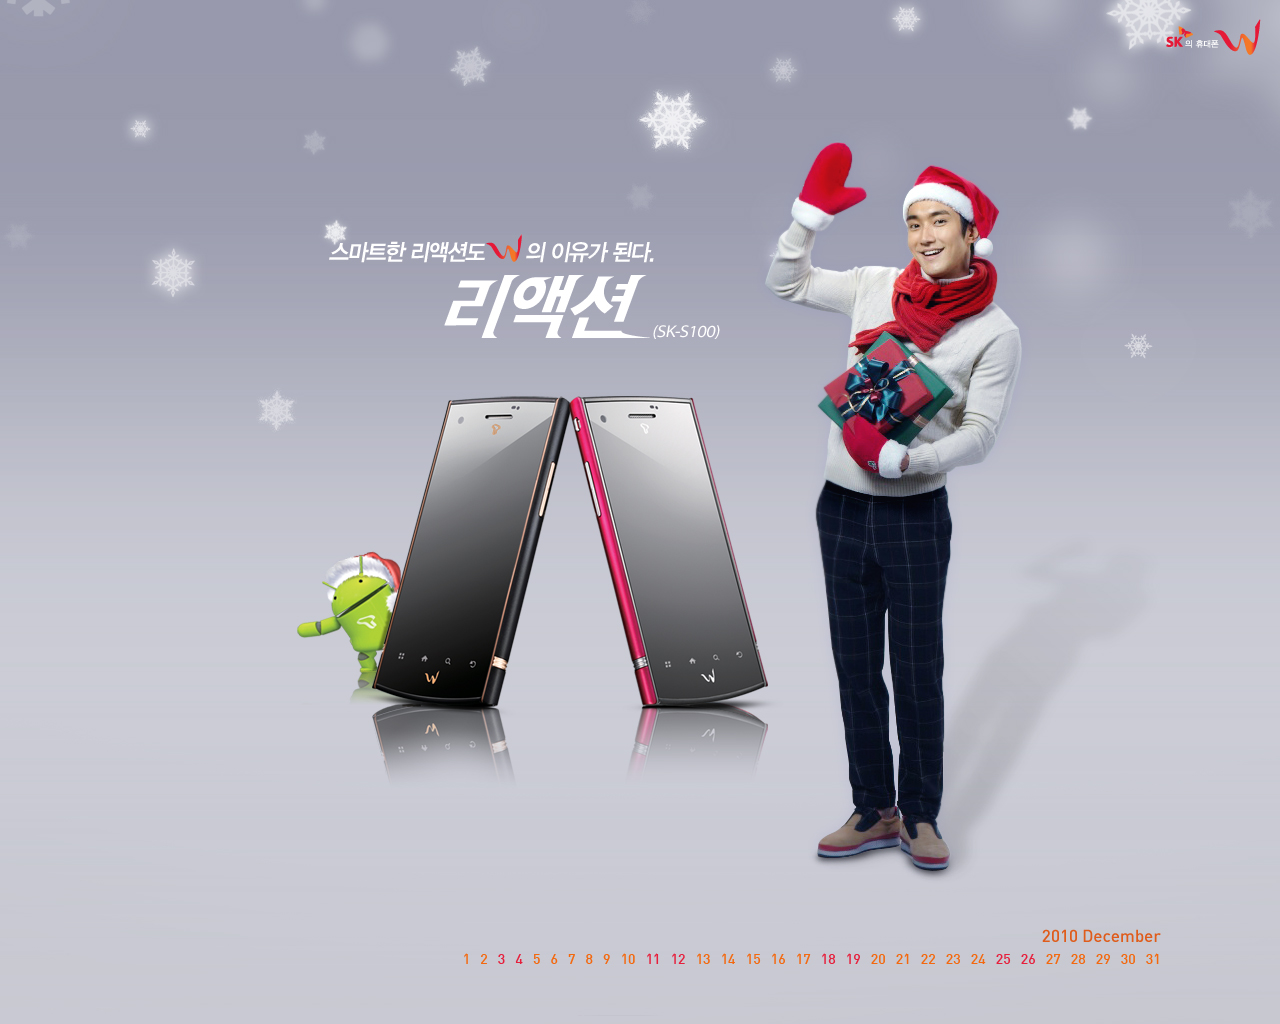 Siwon releases December Wallpaper for SKW Reaction Smartphone  E.L.F